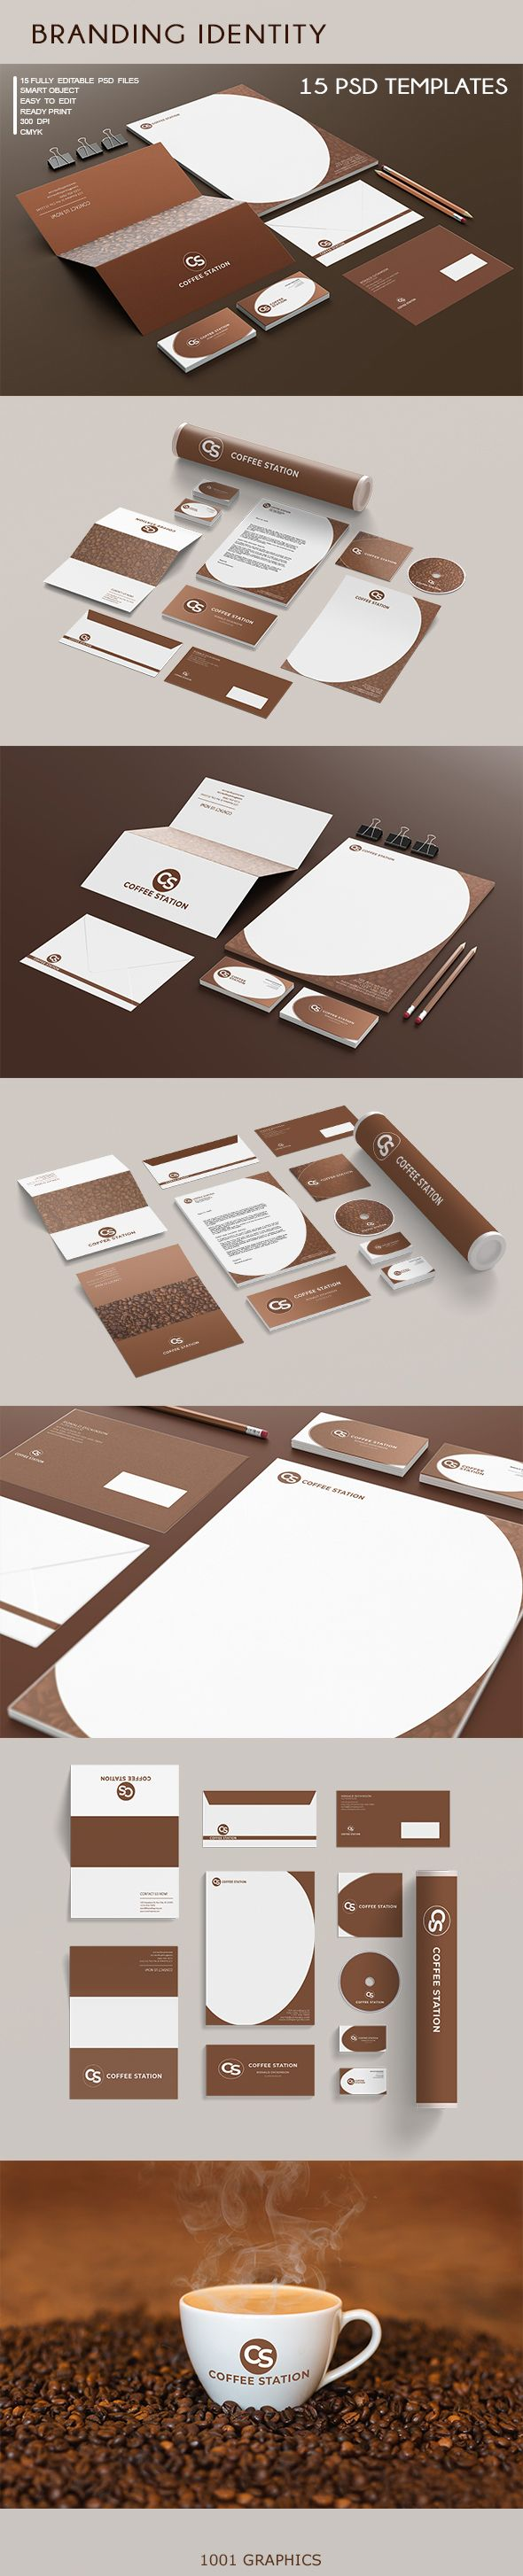 Branding Identity - 15 PSD Templates Screenshot 1